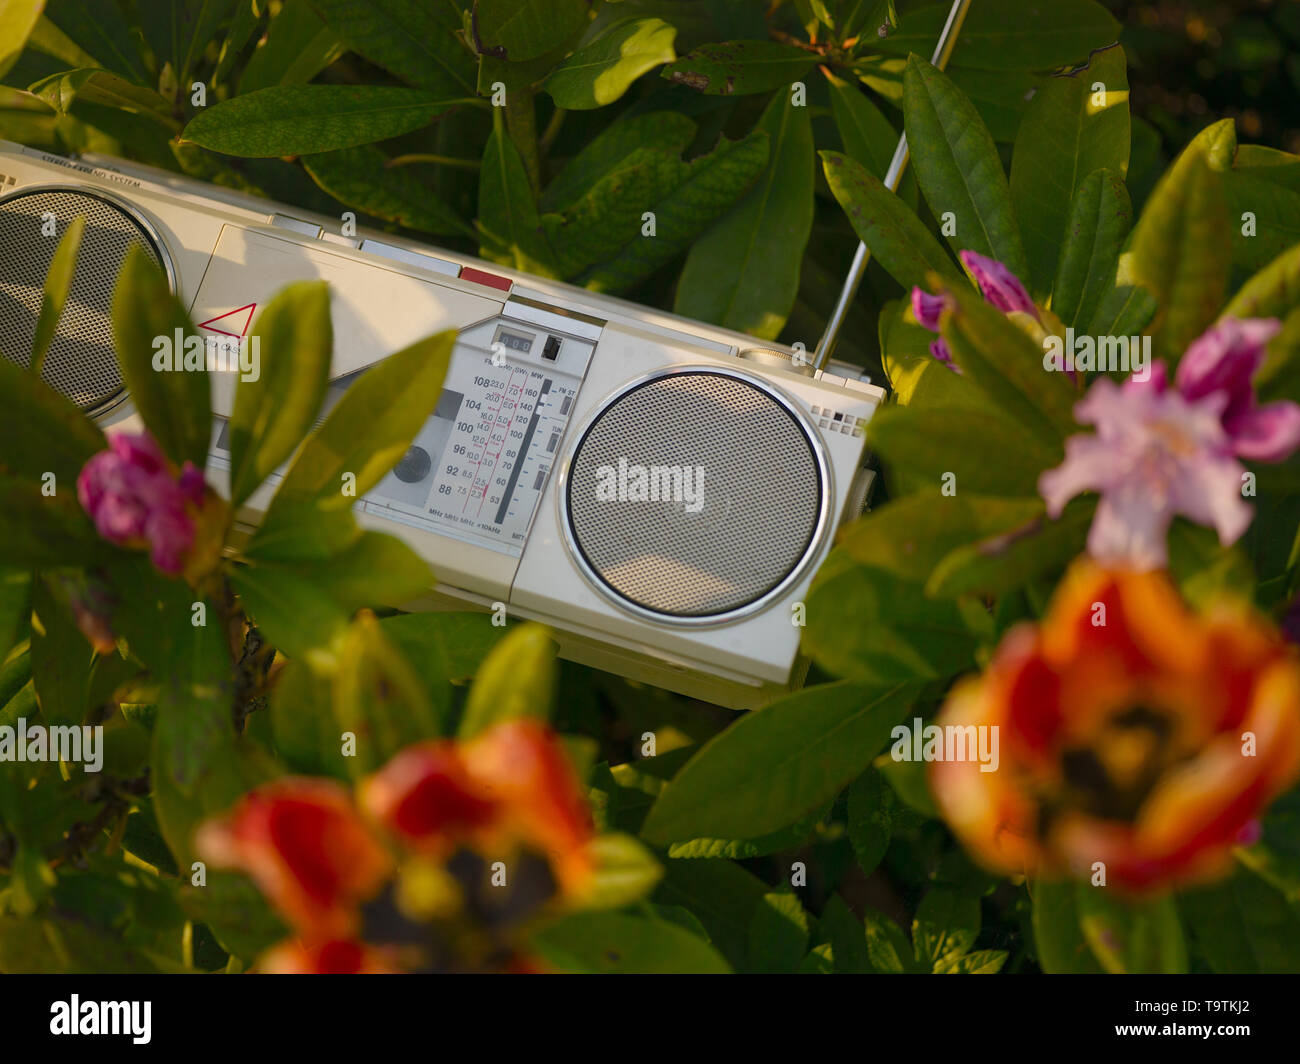 Vintage stereo cassette player between the blooming flowers, concept of a garden party - Stock Image